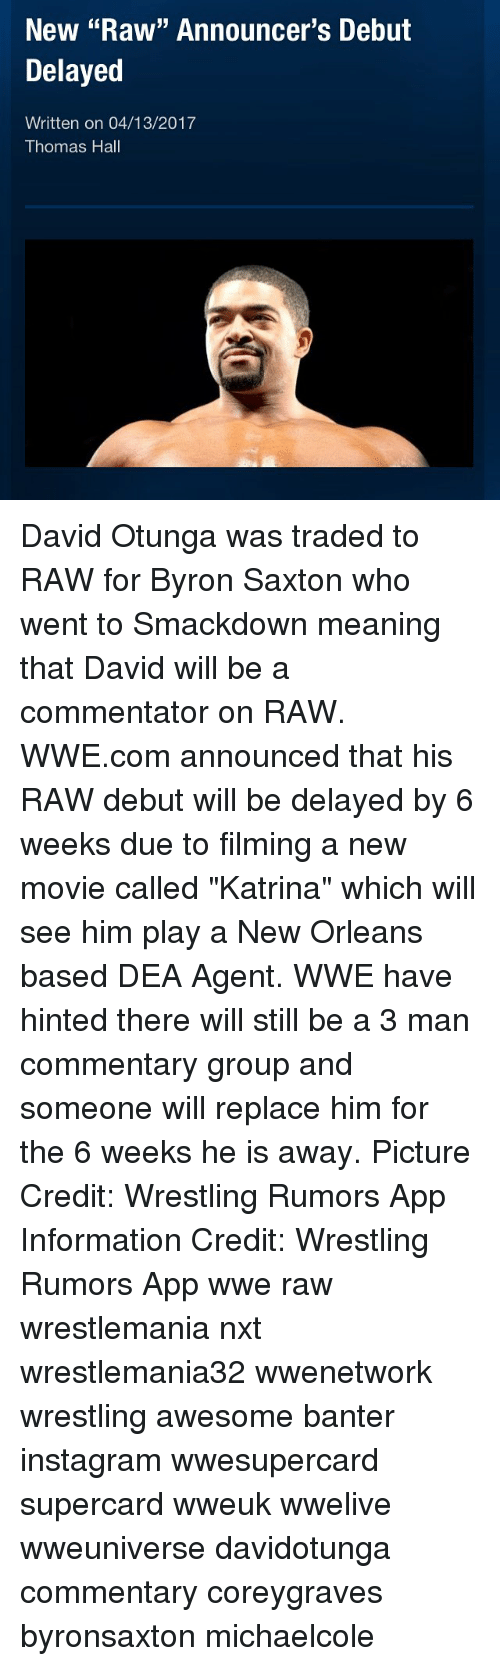 "raw wwe: New ""Raw"" Announcer's Debut  Delayed  Written on 04/13/2017  Thomas Hall David Otunga was traded to RAW for Byron Saxton who went to Smackdown meaning that David will be a commentator on RAW. WWE.com announced that his RAW debut will be delayed by 6 weeks due to filming a new movie called ""Katrina"" which will see him play a New Orleans based DEA Agent. WWE have hinted there will still be a 3 man commentary group and someone will replace him for the 6 weeks he is away. Picture Credit: Wrestling Rumors App Information Credit: Wrestling Rumors App wwe raw wrestlemania nxt wrestlemania32 wwenetwork wrestling awesome banter instagram wwesupercard supercard wweuk wwelive wweuniverse davidotunga commentary coreygraves byronsaxton michaelcole"